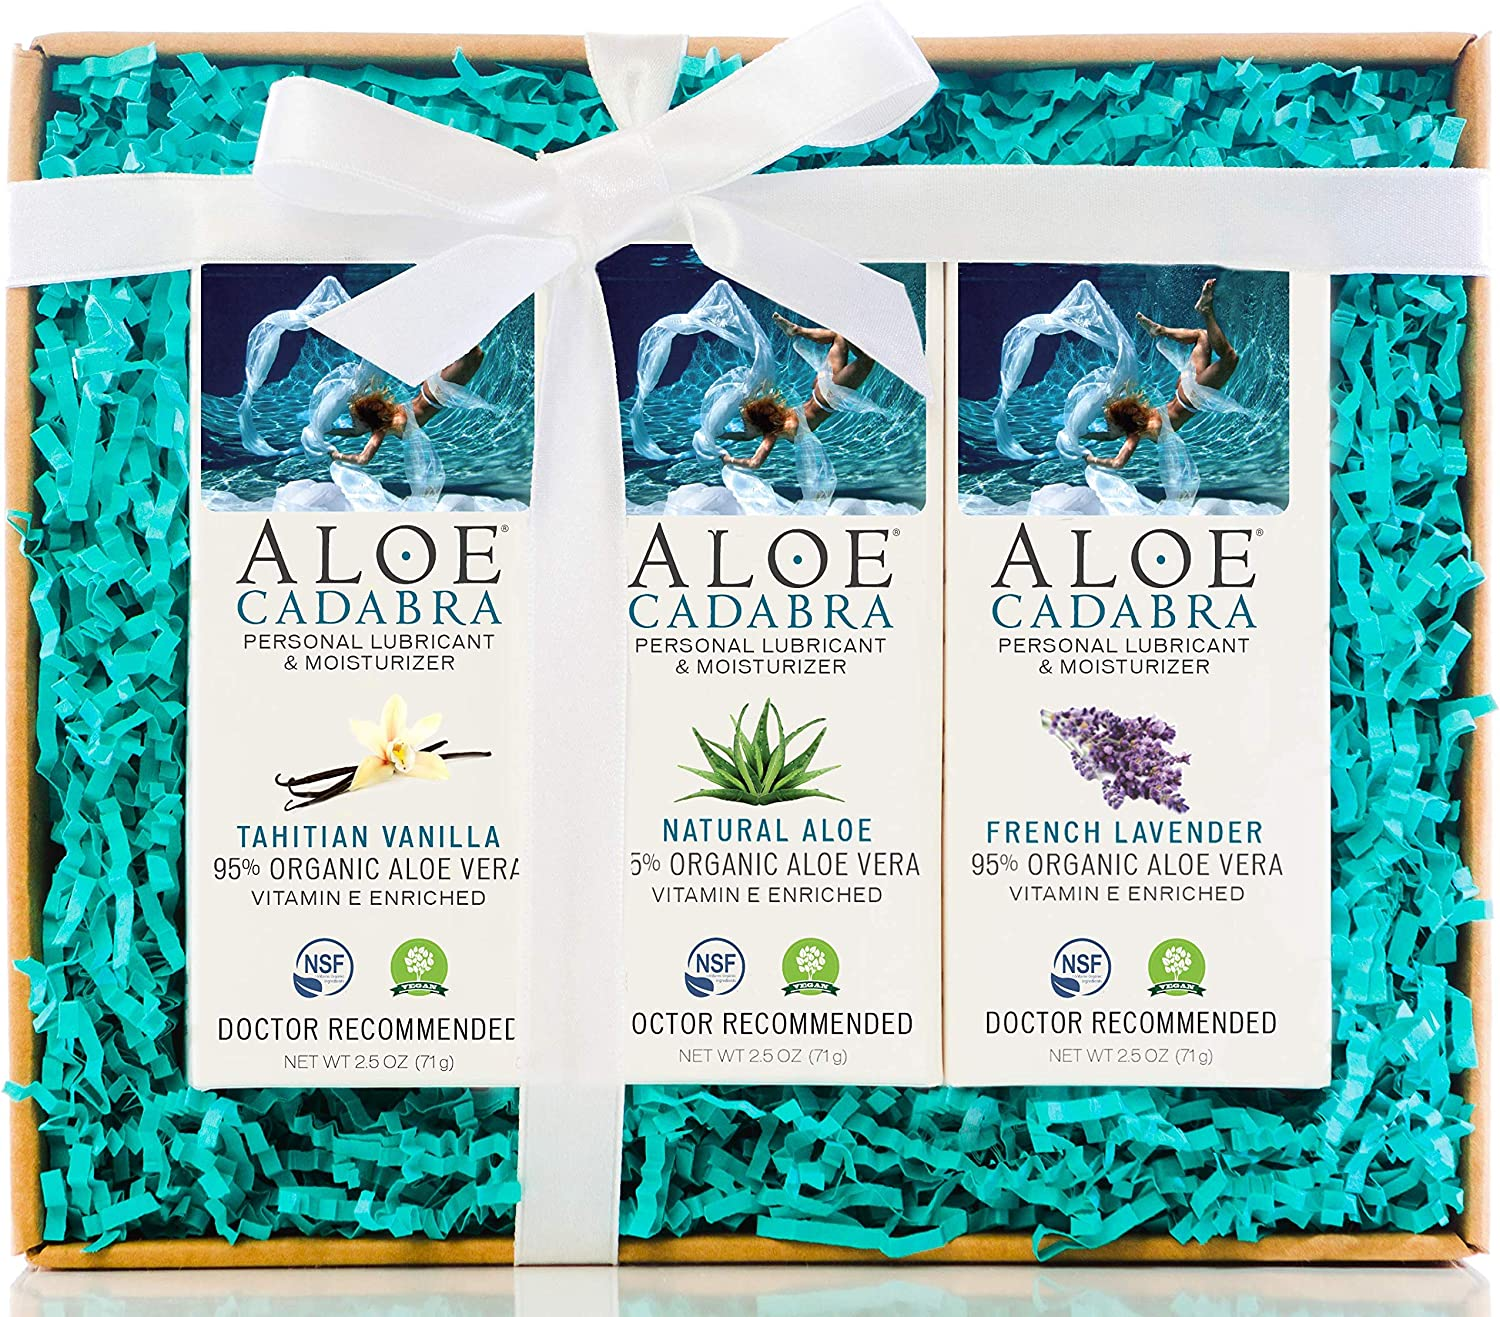 Aloe Cadabra Organic Max 64% OFF Personal Lubricant Vaginal Mois Sale Special Price Natural and